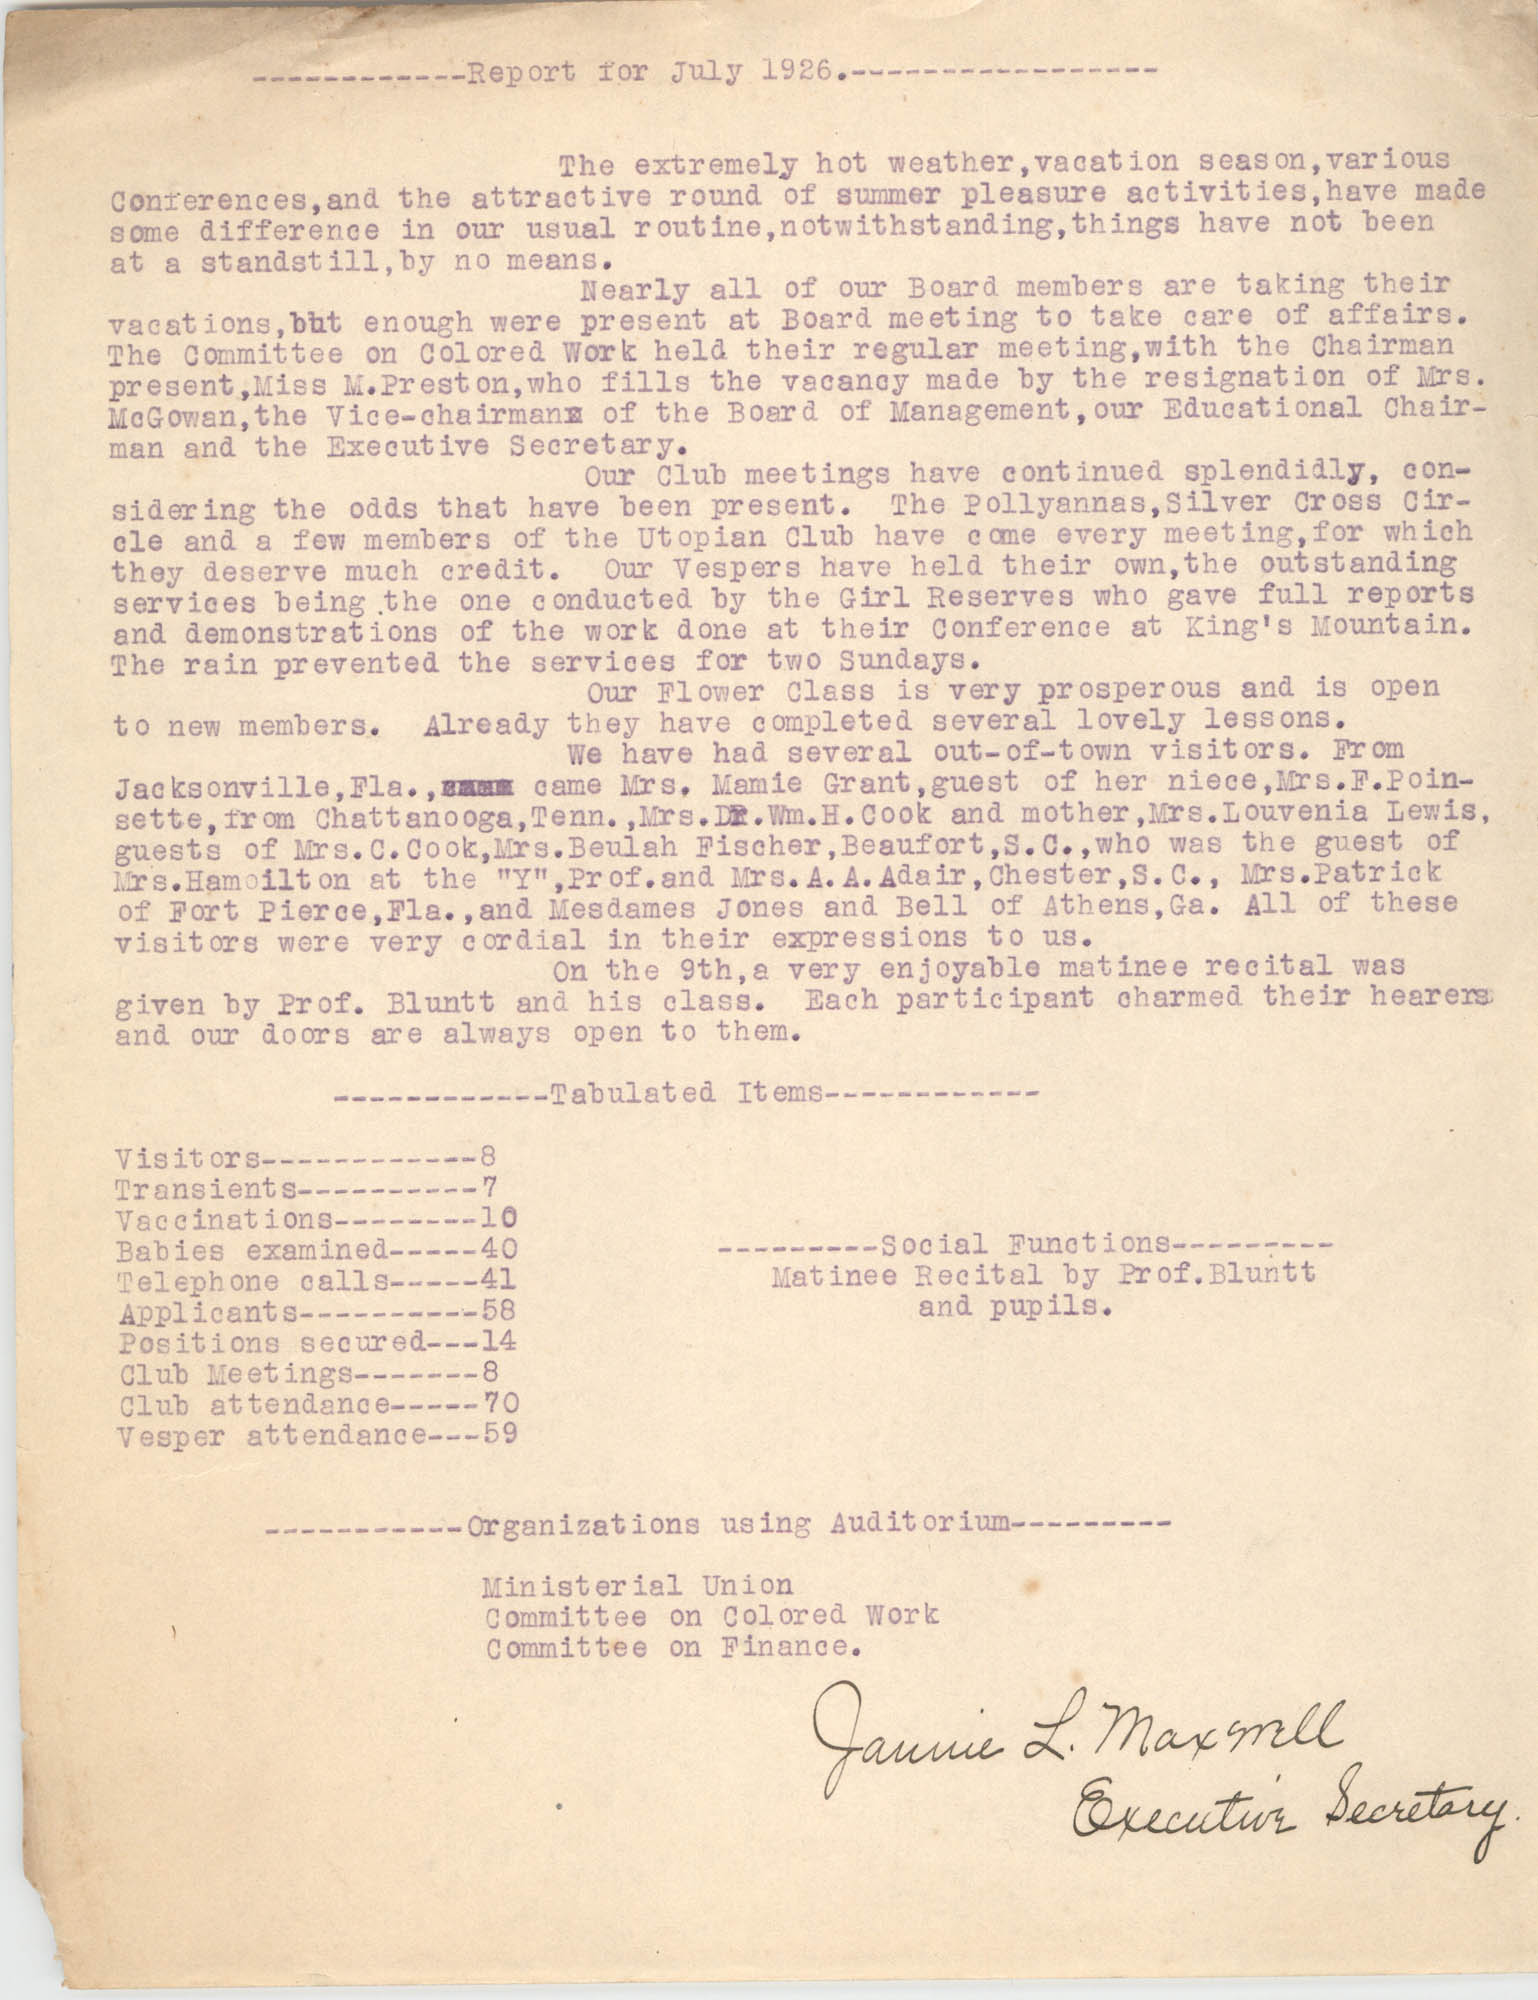 Monthly Report for the Coming Street Y.W.C.A., July 1926